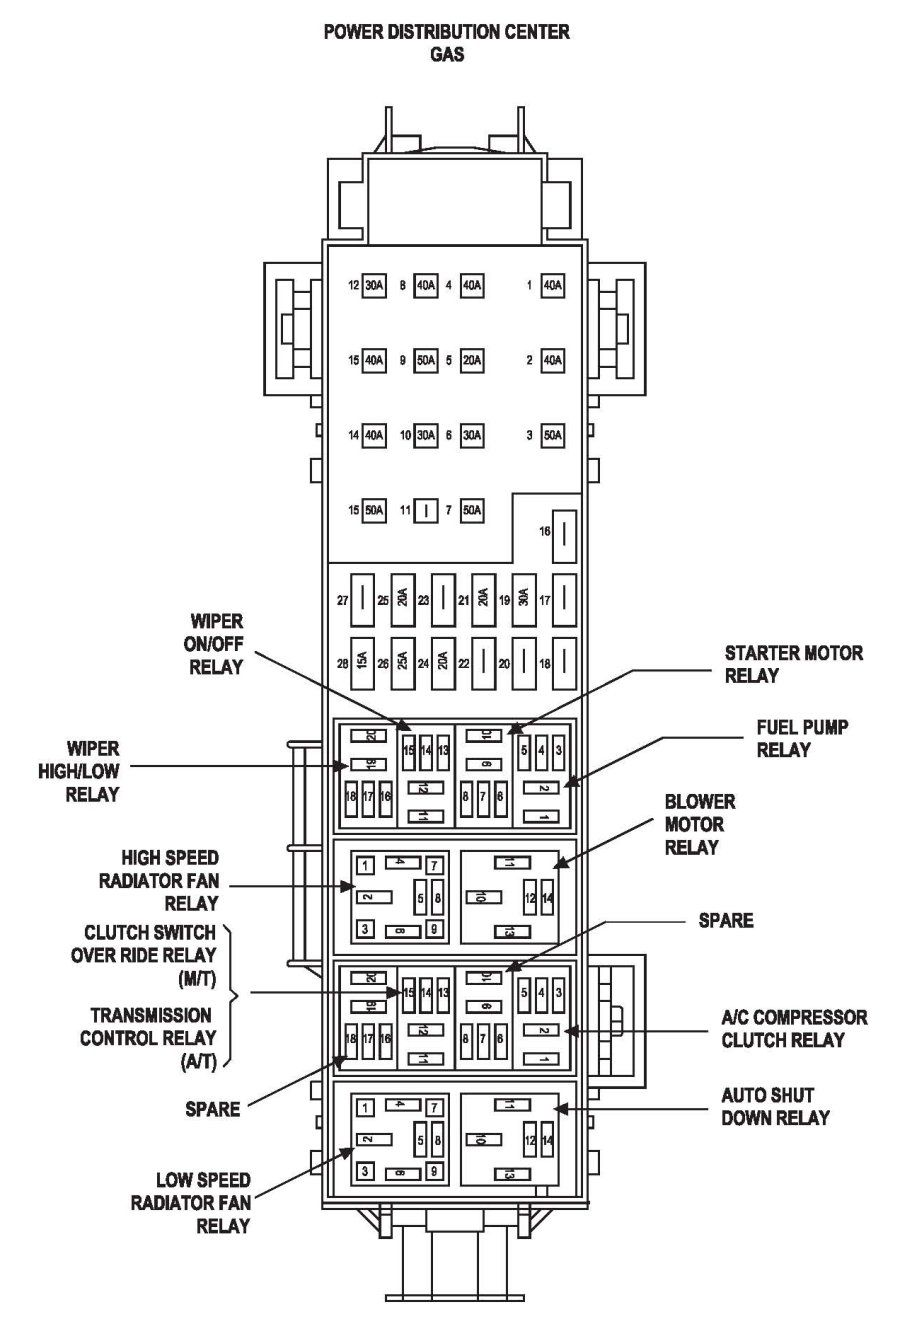 b3536c3739783eb19f827744cc42c3c4 jeep liberty fuse box diagram image details jeep liberty dodge nitro fuse box at readyjetset.co